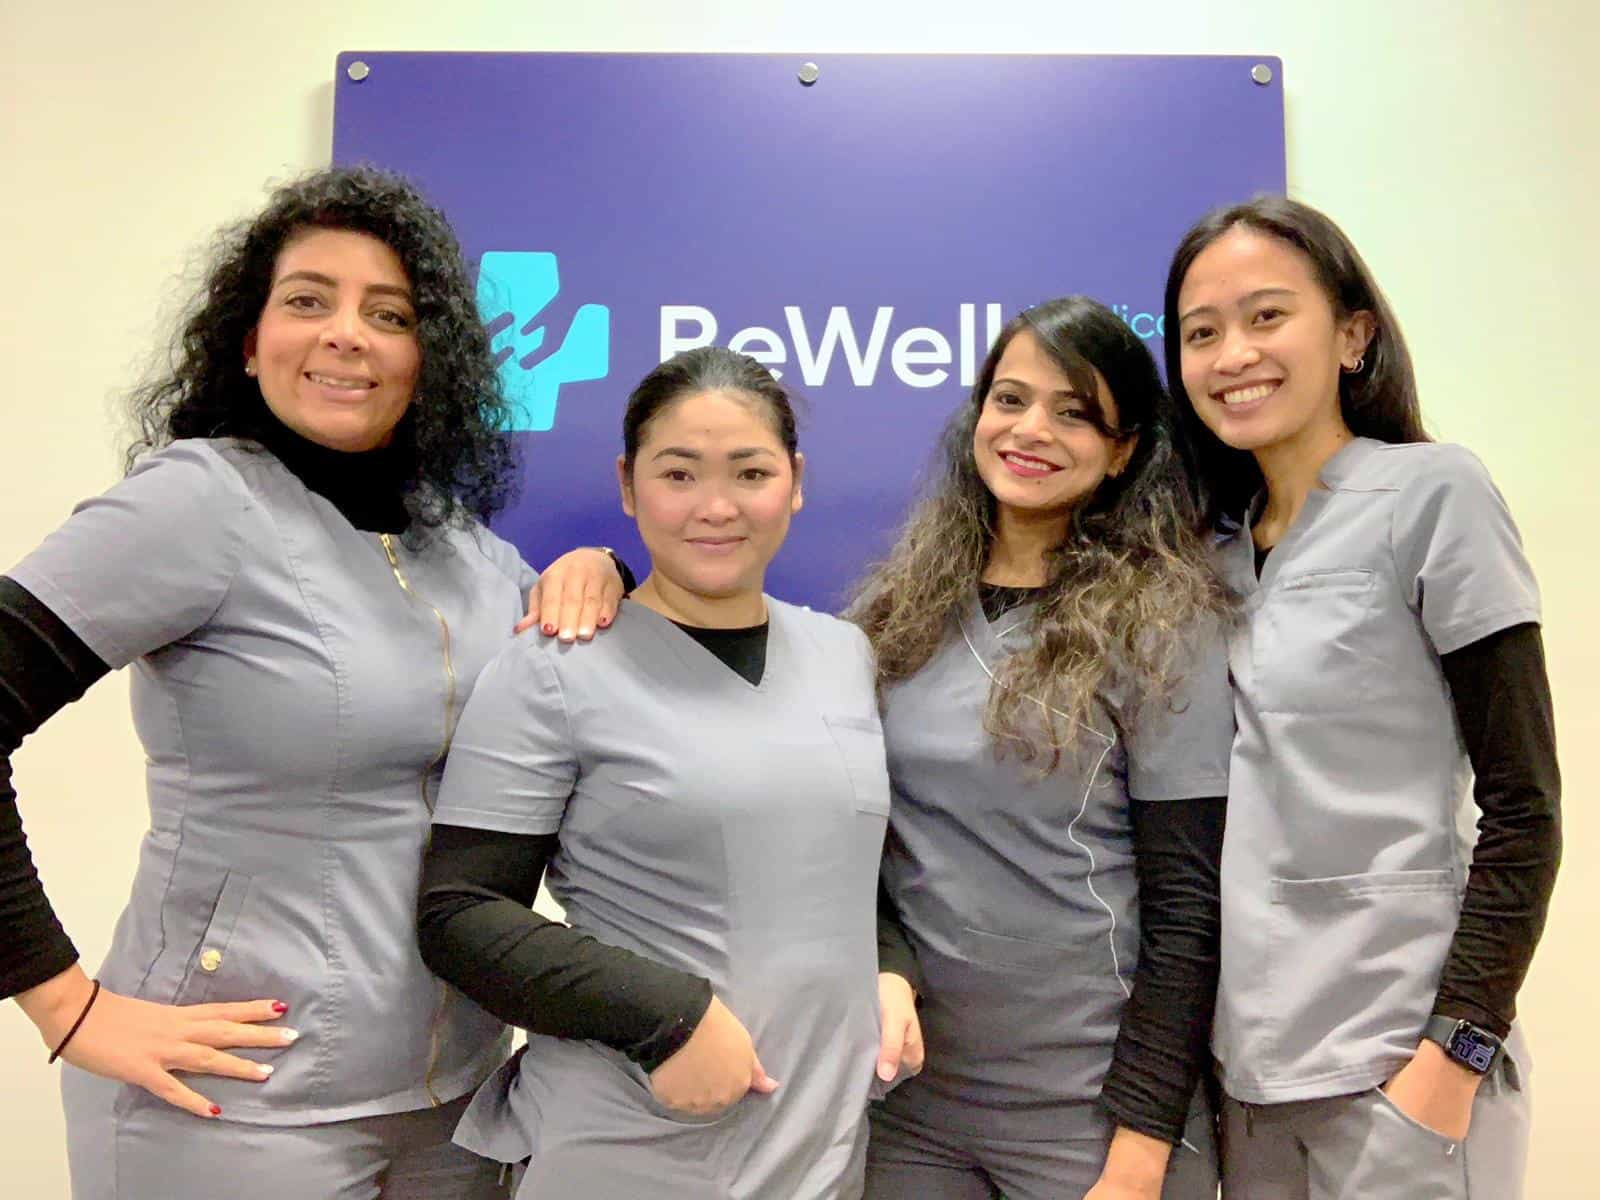 bewell-medical-assistant-team